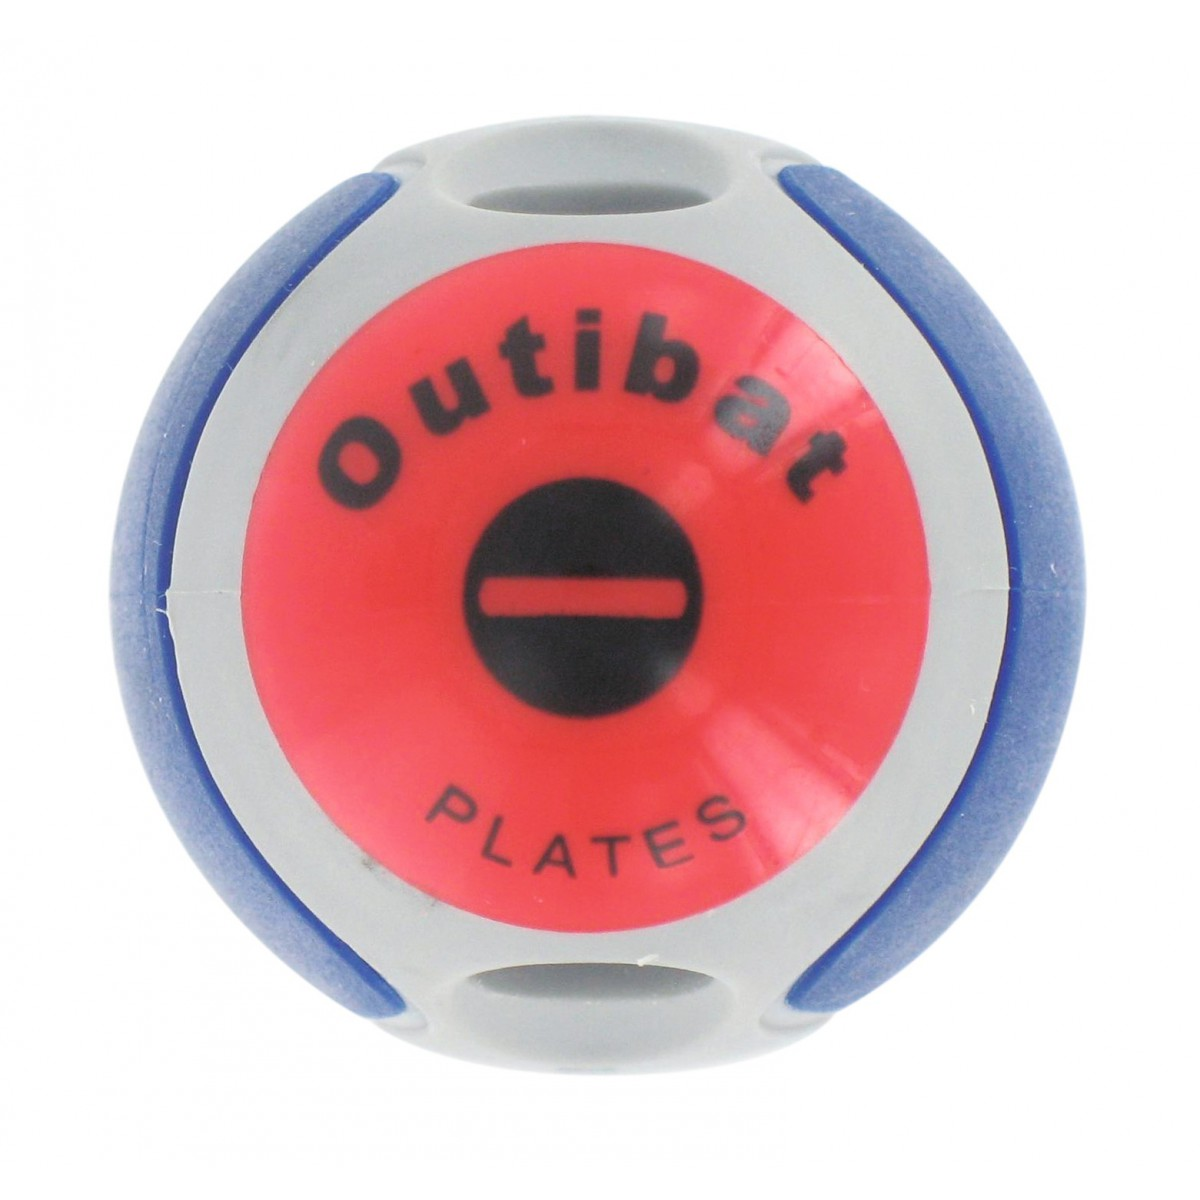 Tournevis lame plate Outibat - 6 x 25 mm